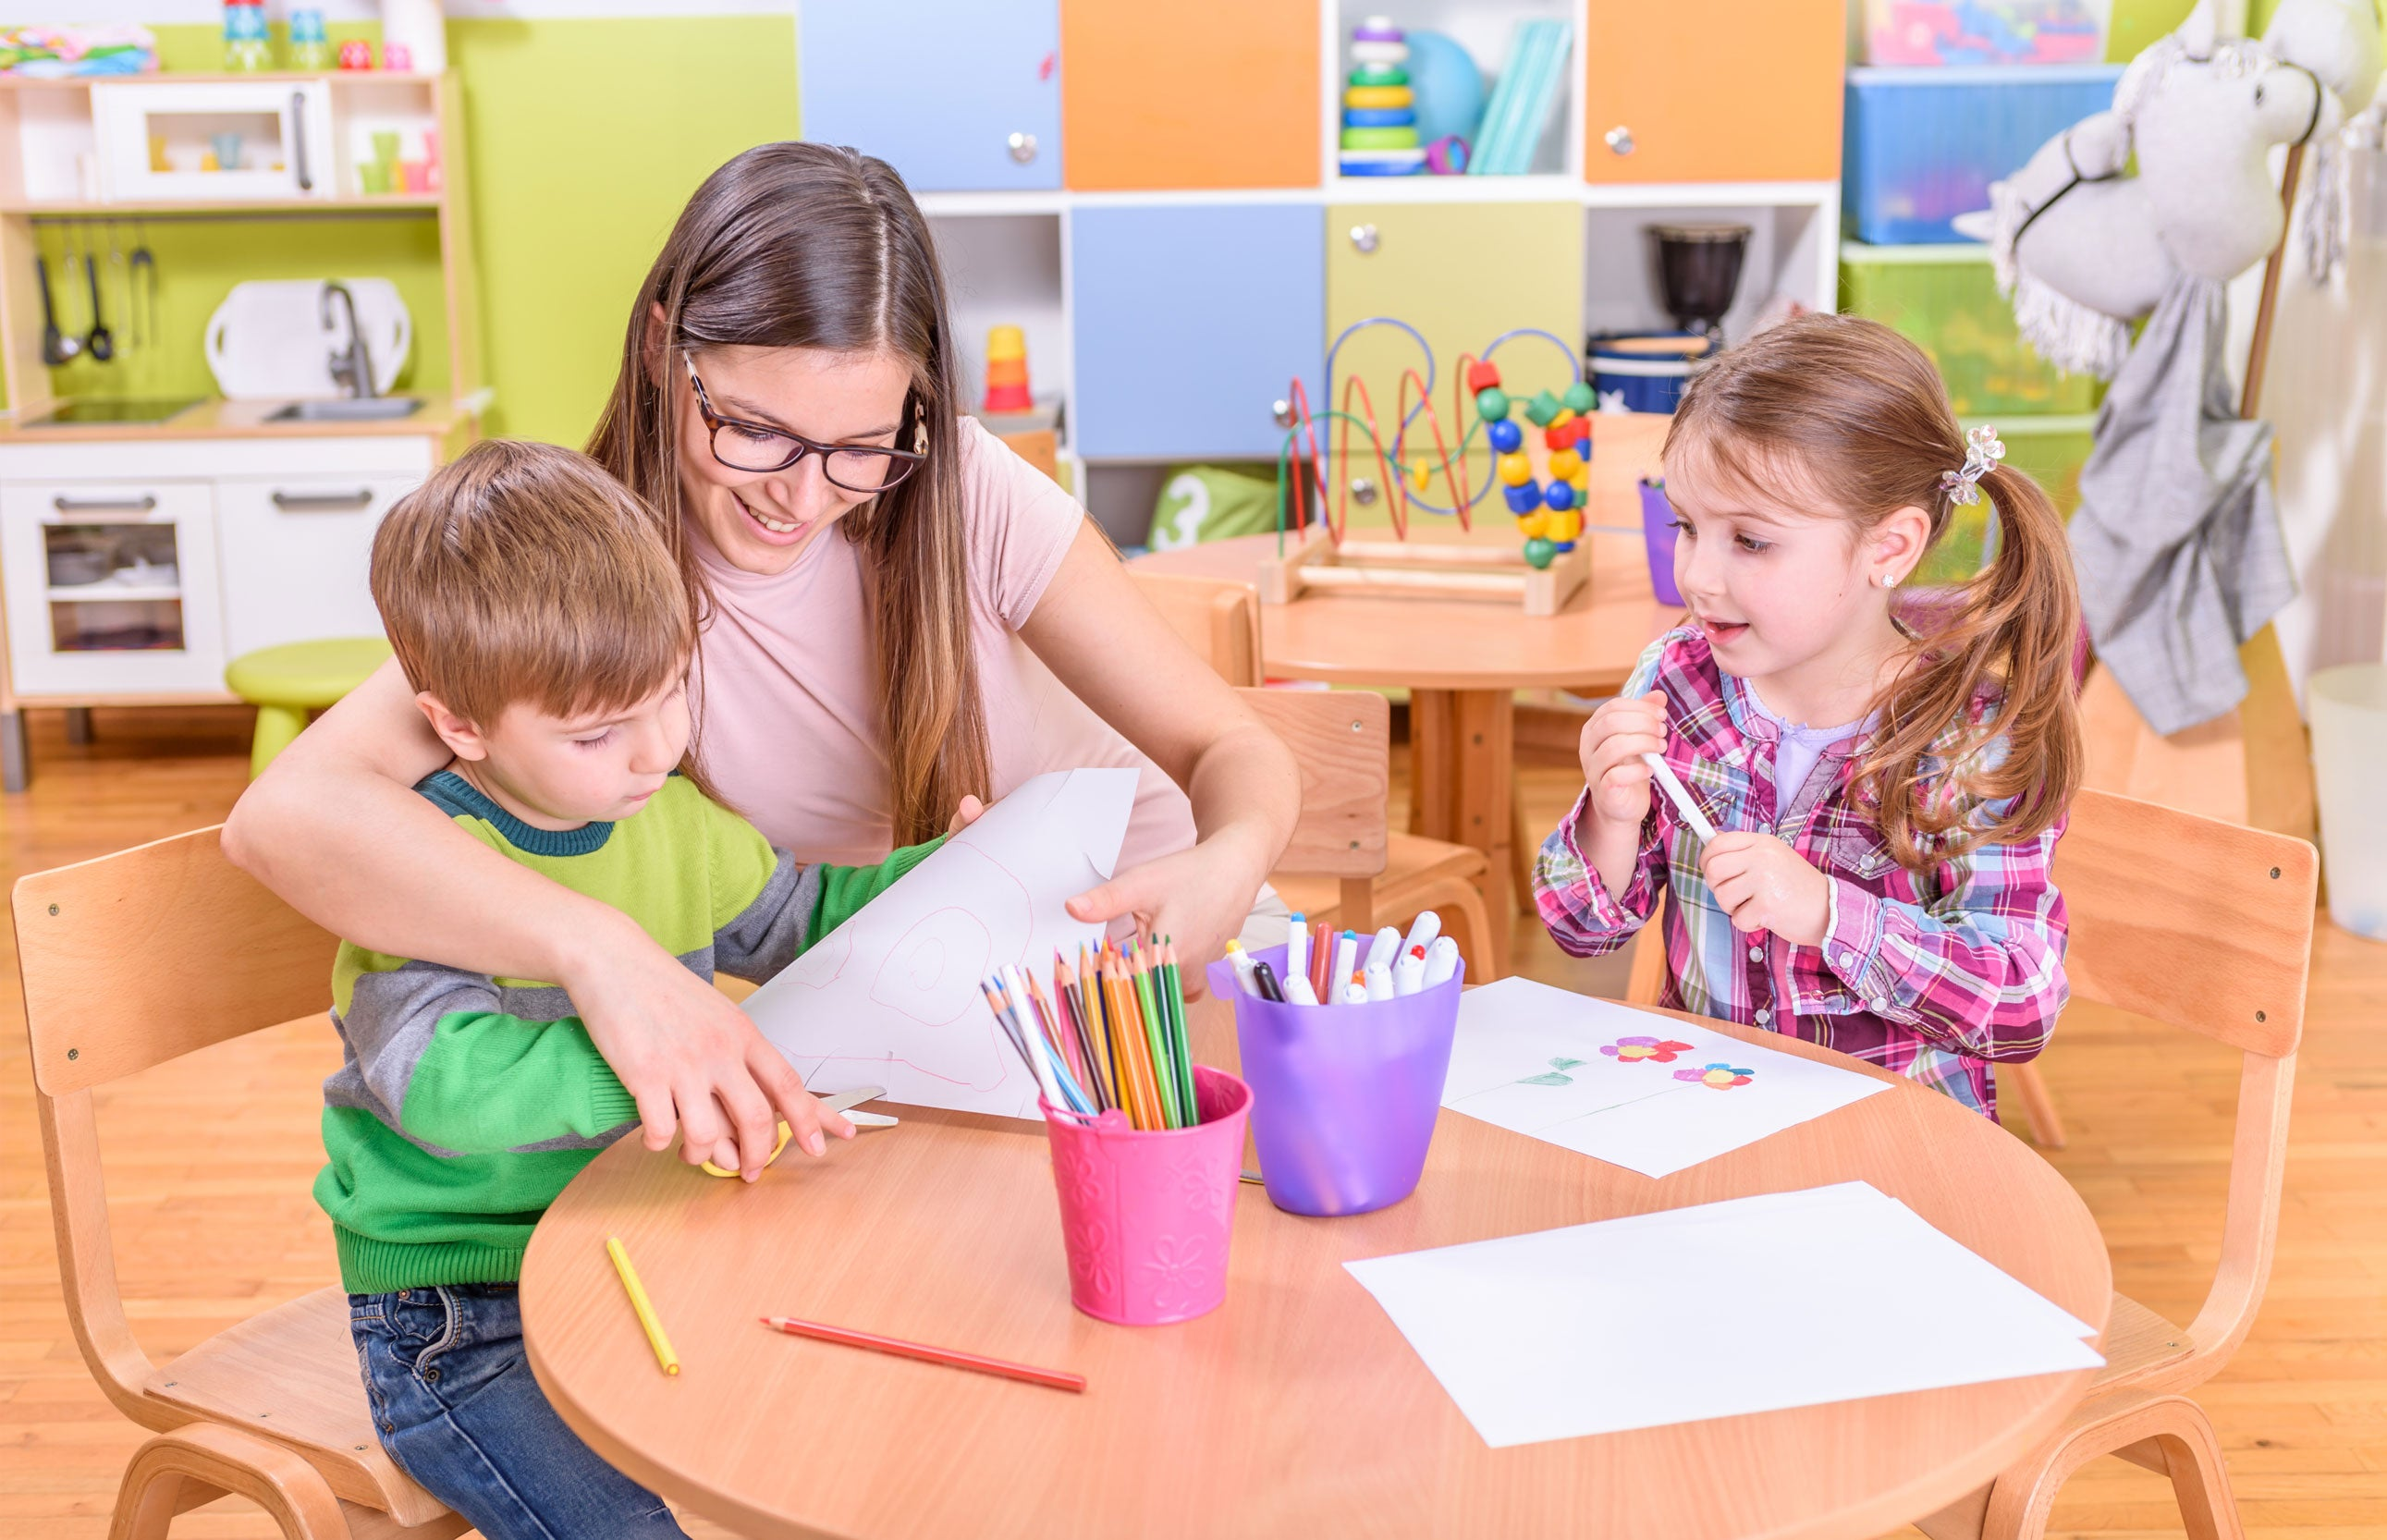 What is a fair price to charge for childcare in New York state?